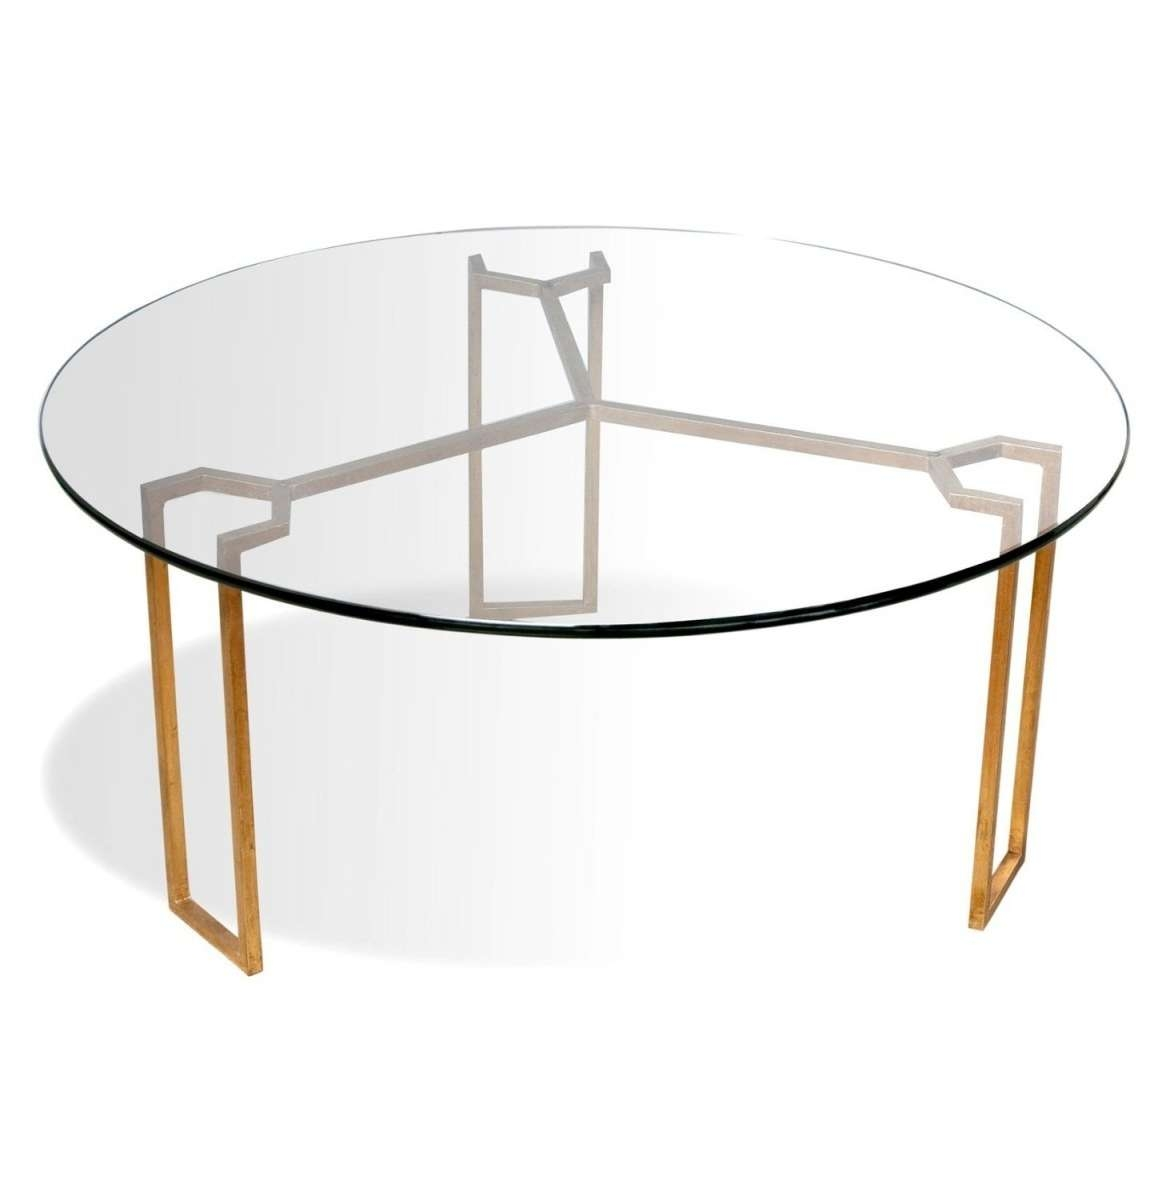 Fashionable Circular Glass Coffee Tables Regarding Coffee Tables : Round Glass Side Table Ikea Small With Drawer Oak (View 10 of 20)